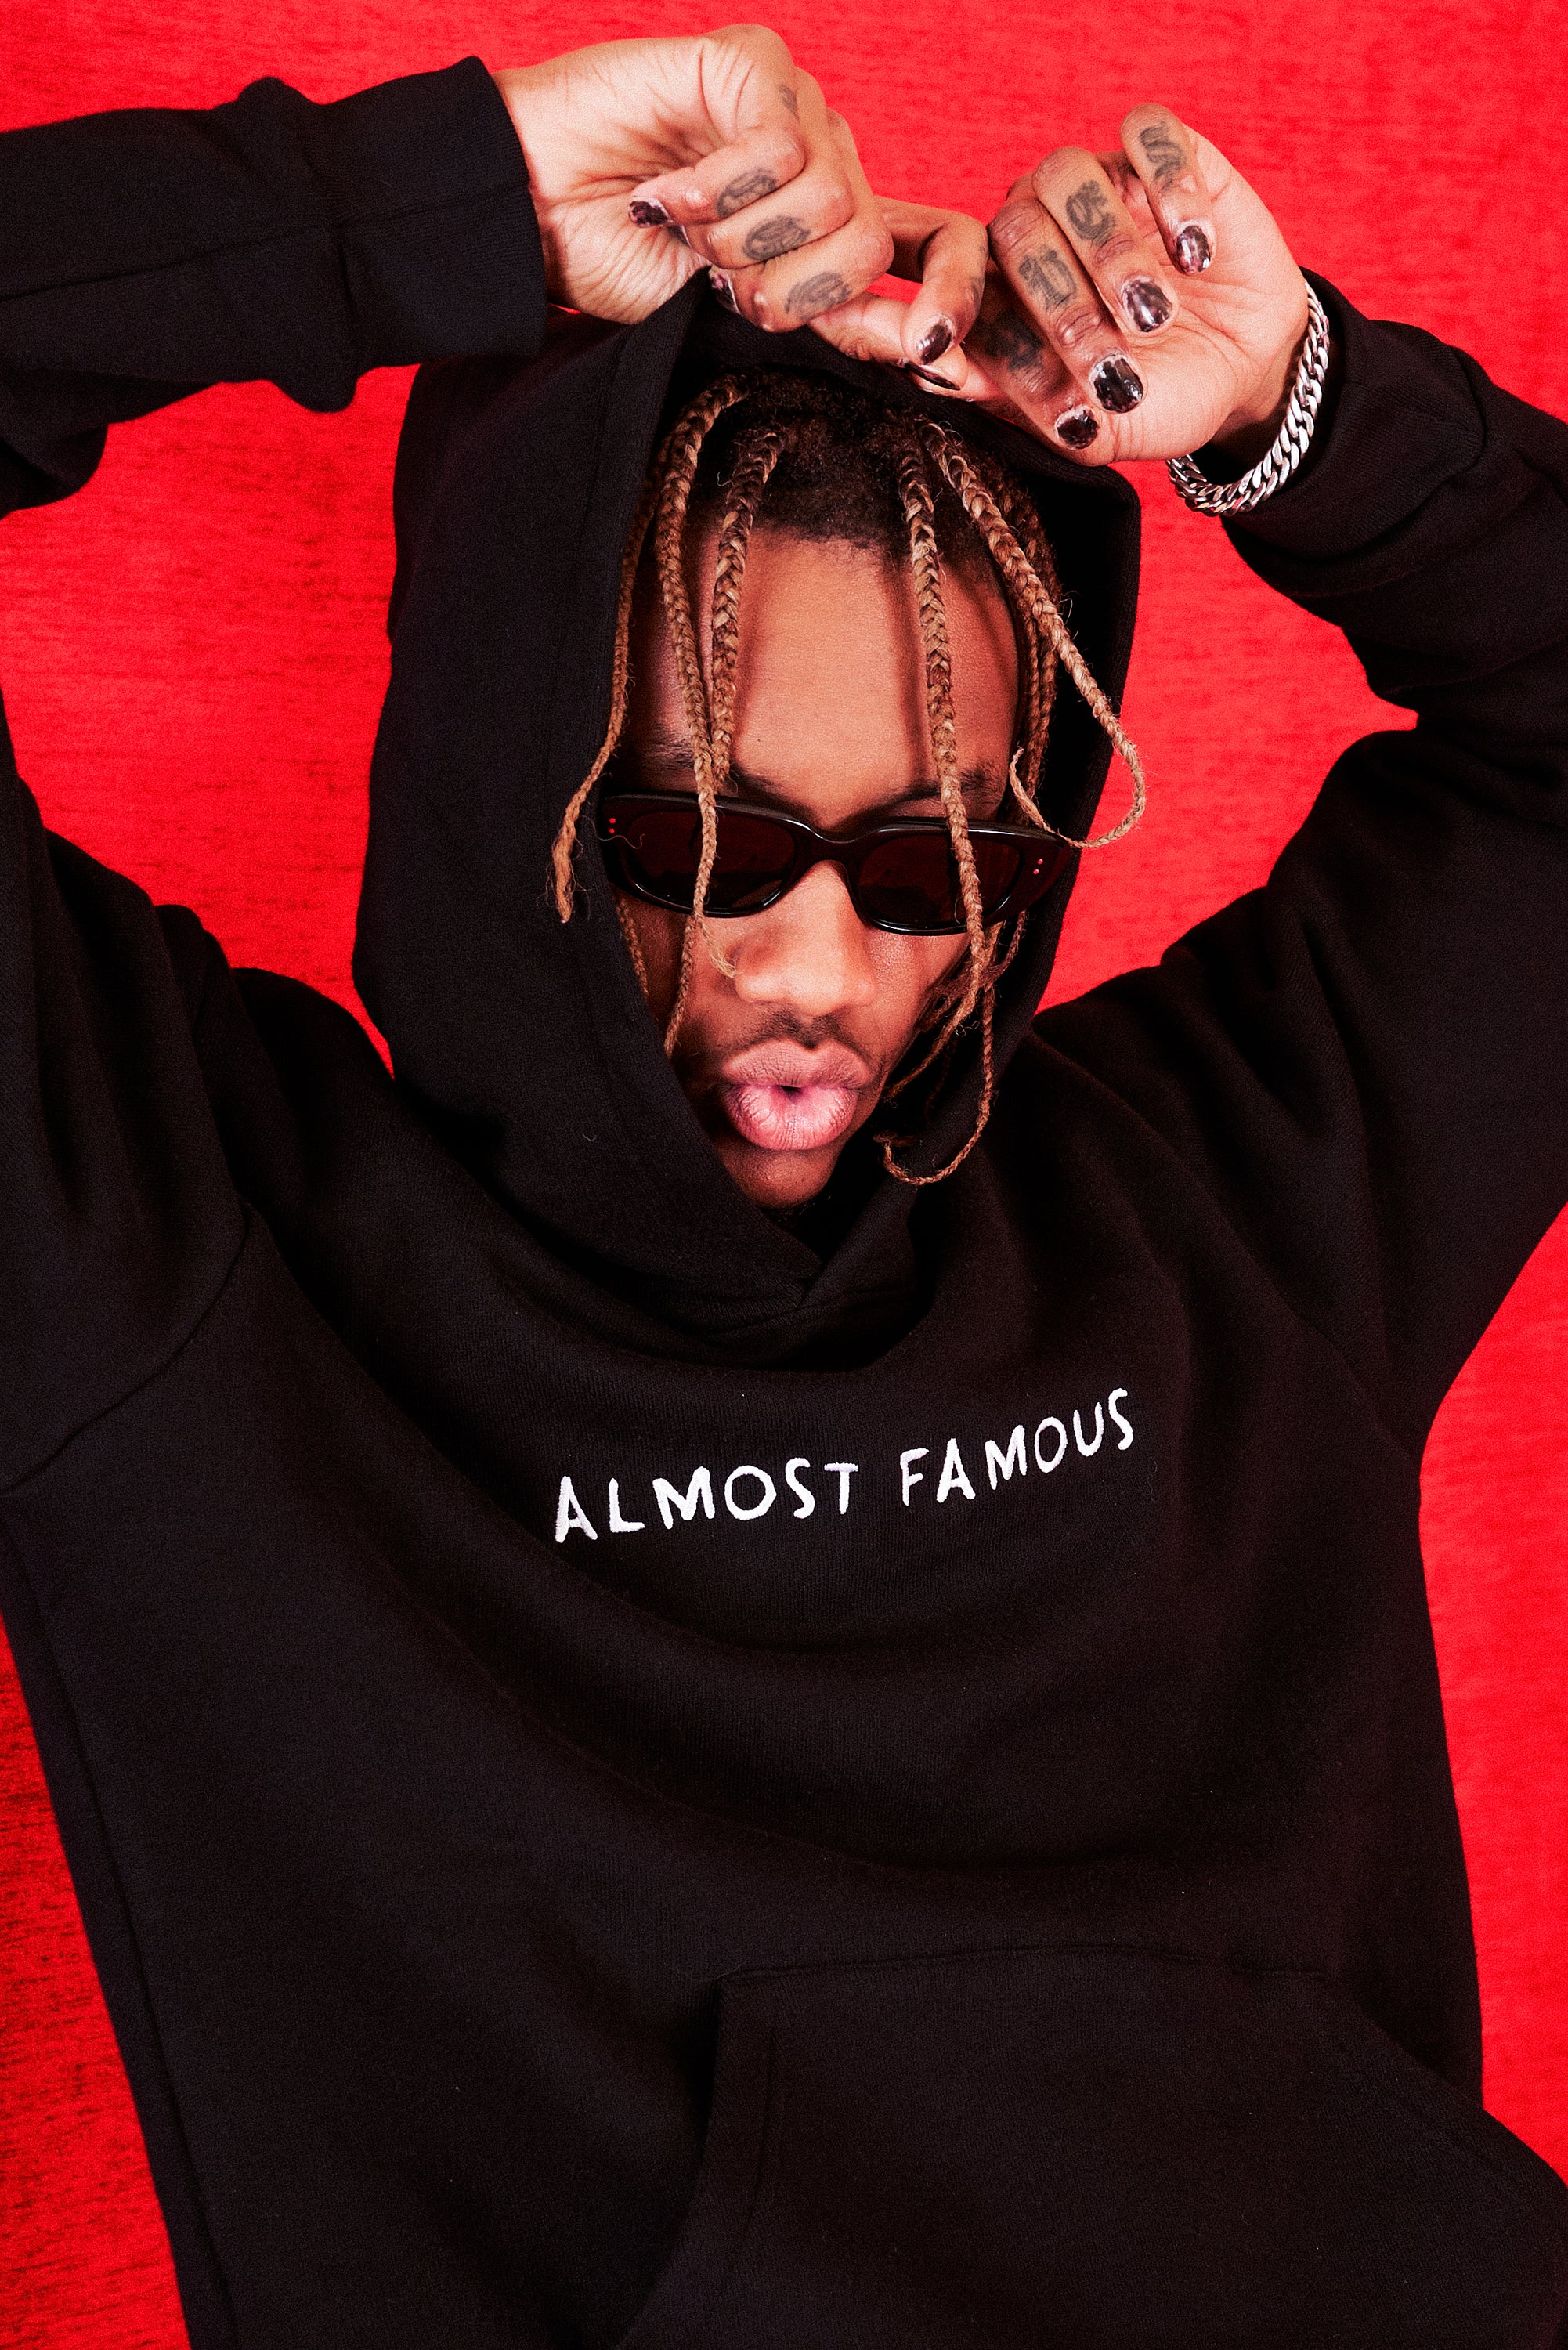 ALMOST FAMOUS HOODIE